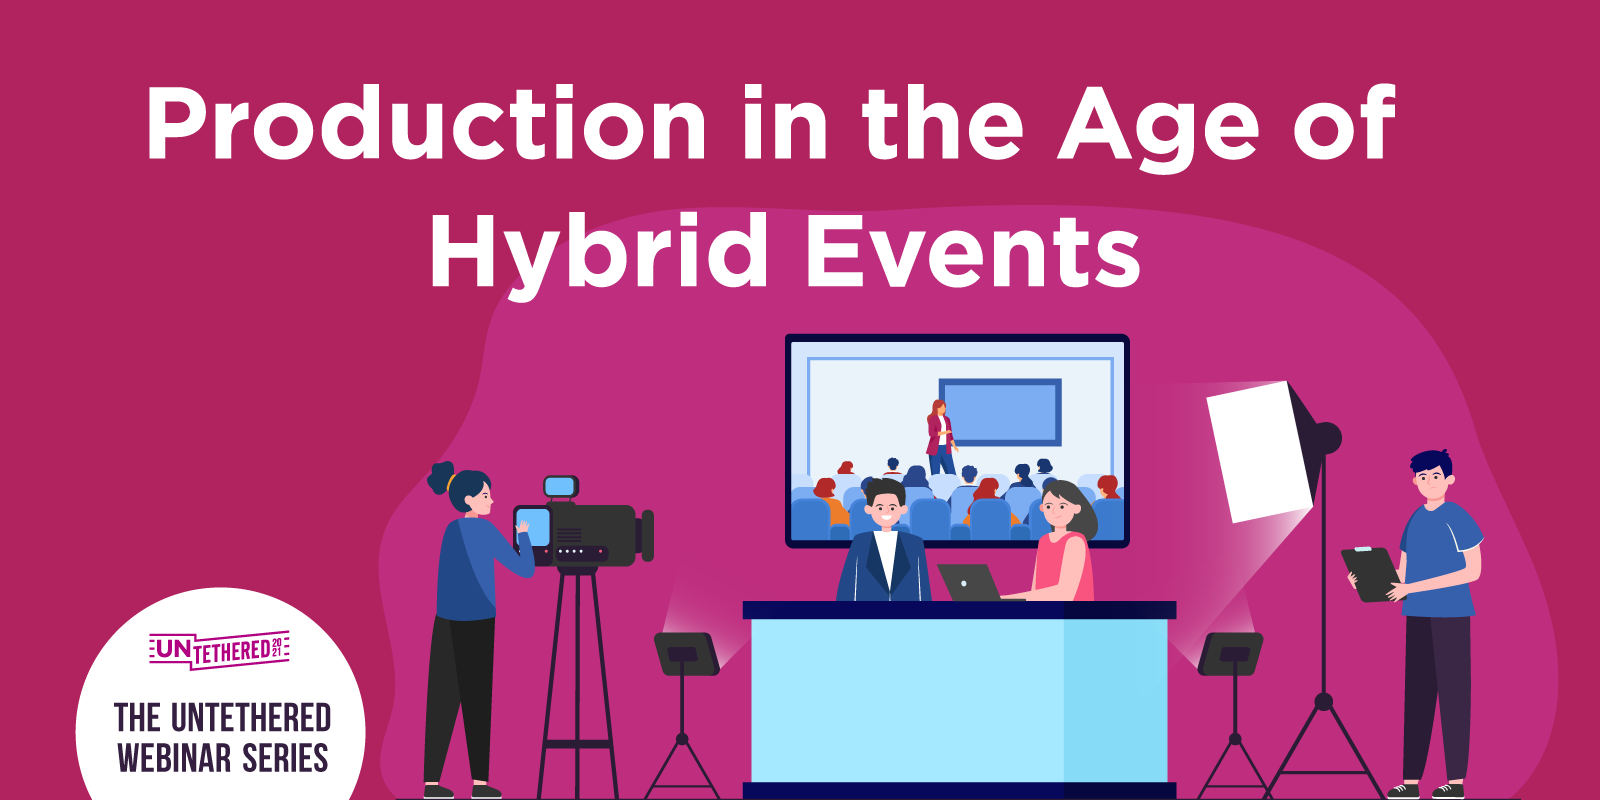 Production in the Age of Hybrid Events Webinar graphic with illustration of a production team doing a live broadcast.